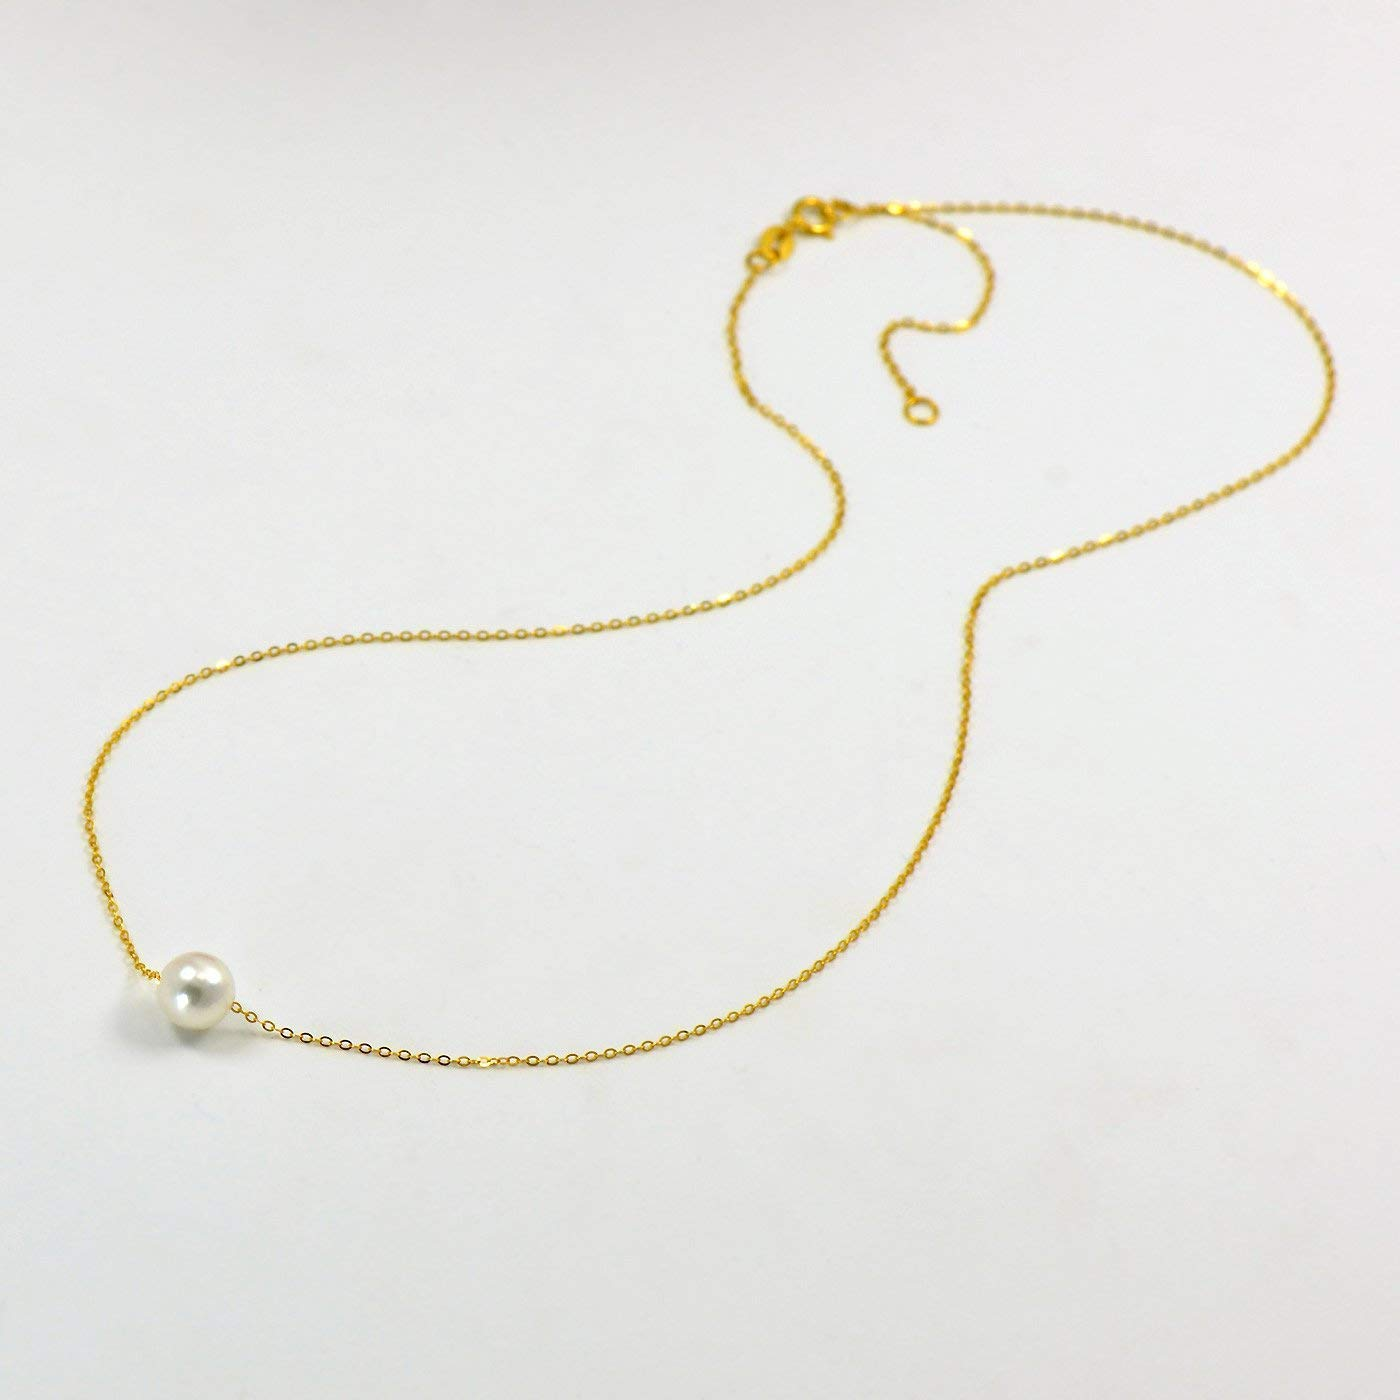 18K Yellow Gold Chain Necklace Single Cultured Japanese Akoya Pearl 7-8MM